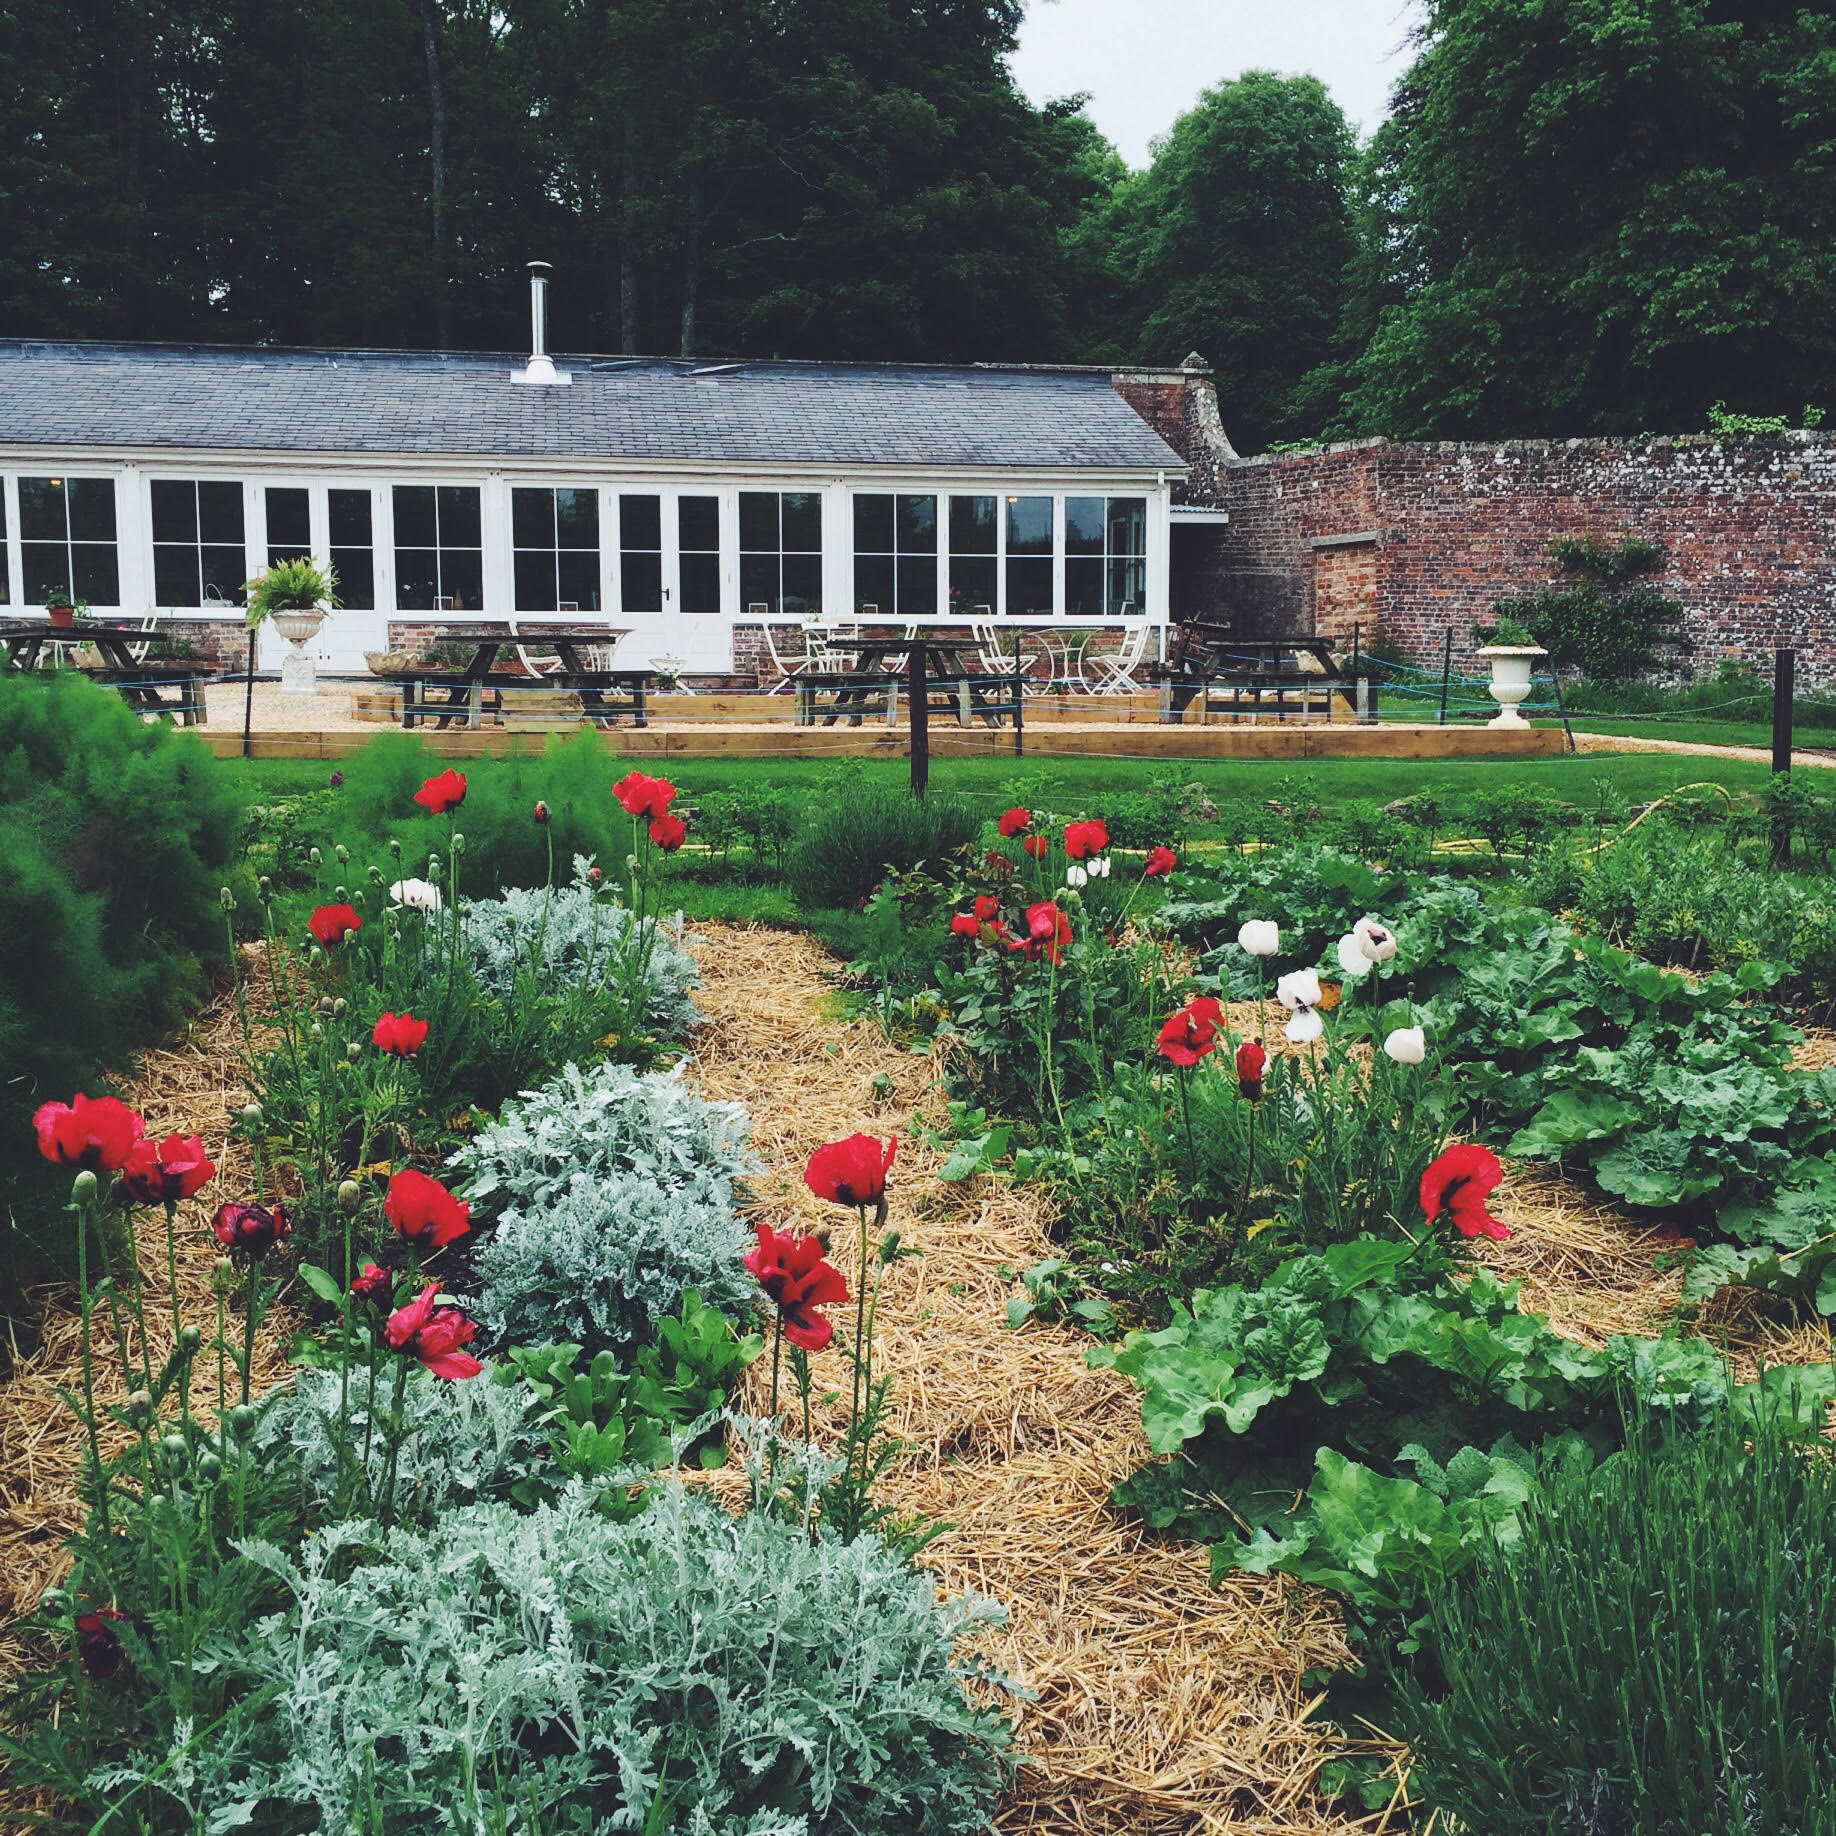 Pythouse Kitchen Garden